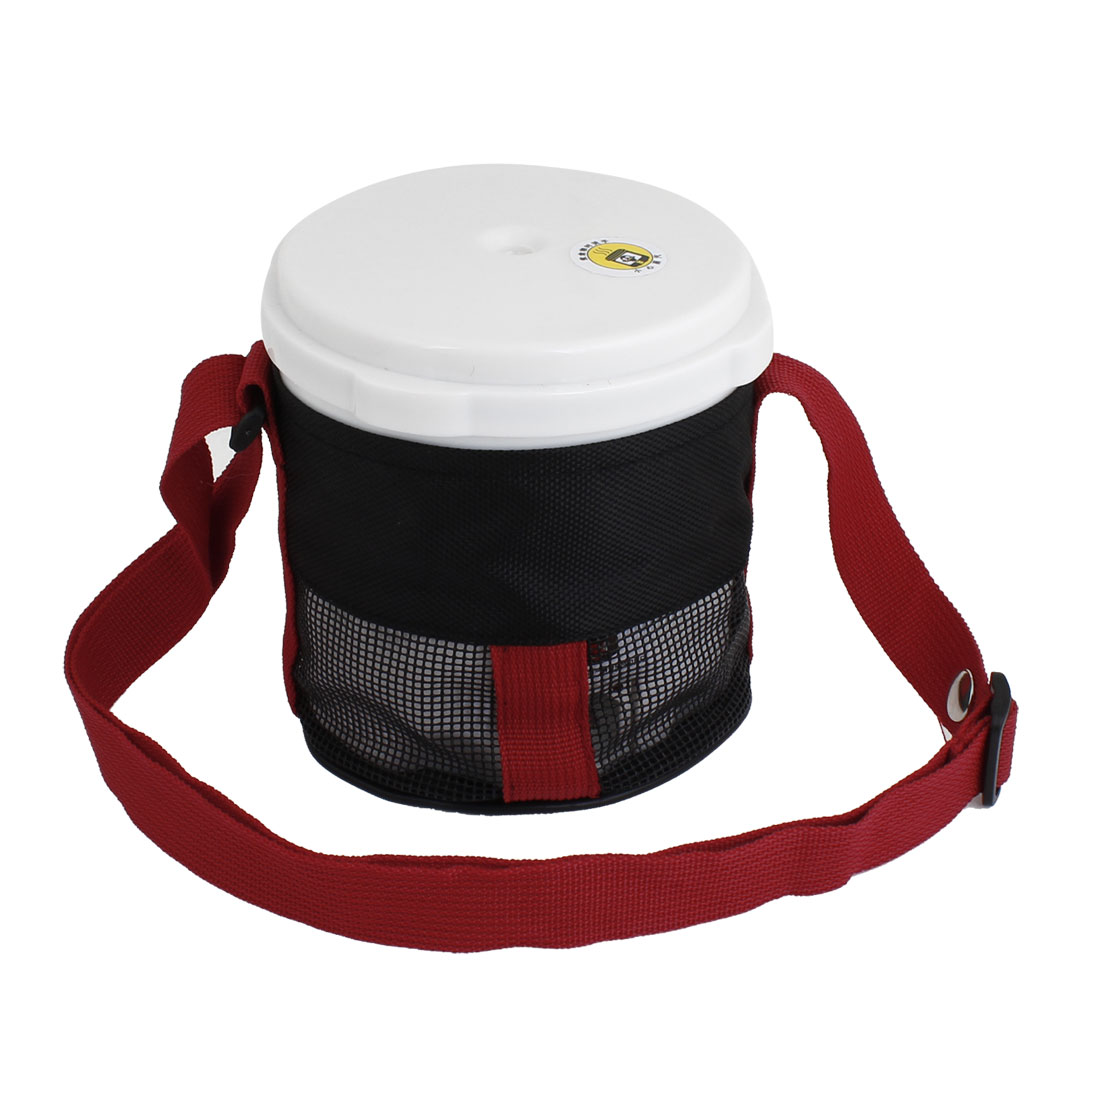 White Portable Electric Heating Lunch Box Rice Dinner Bucket for Auto